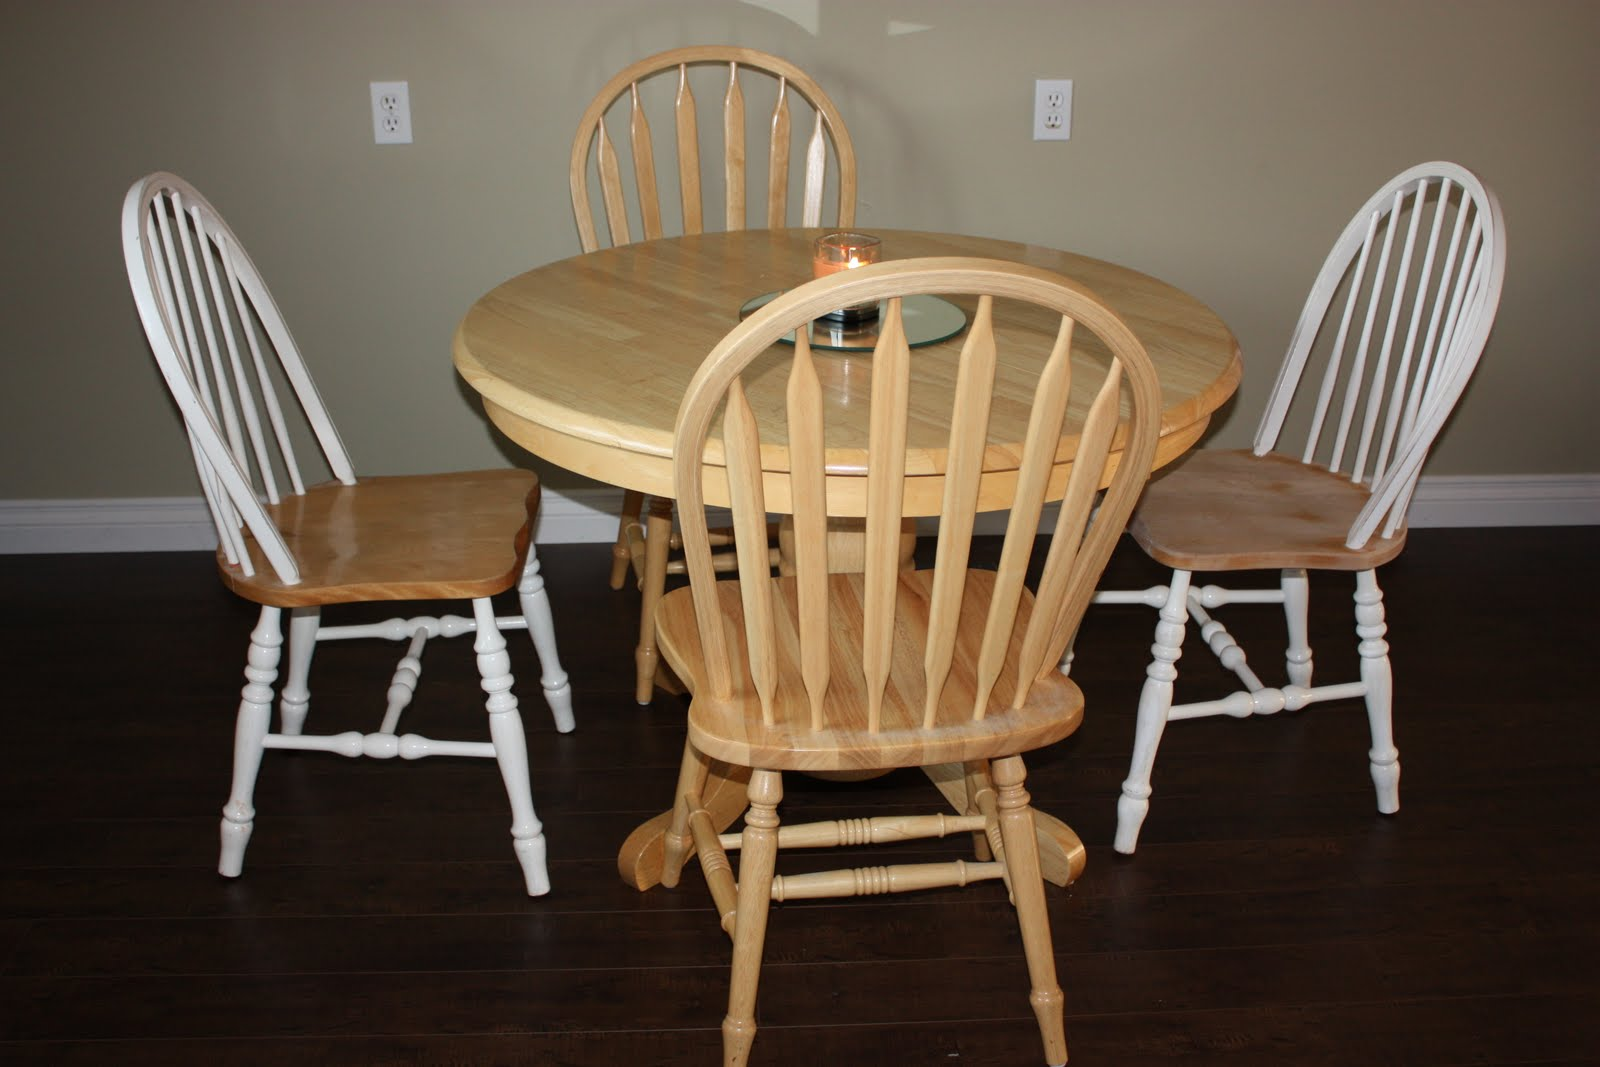 Life and home renos kitchen table redo - Kitchen table redo ...